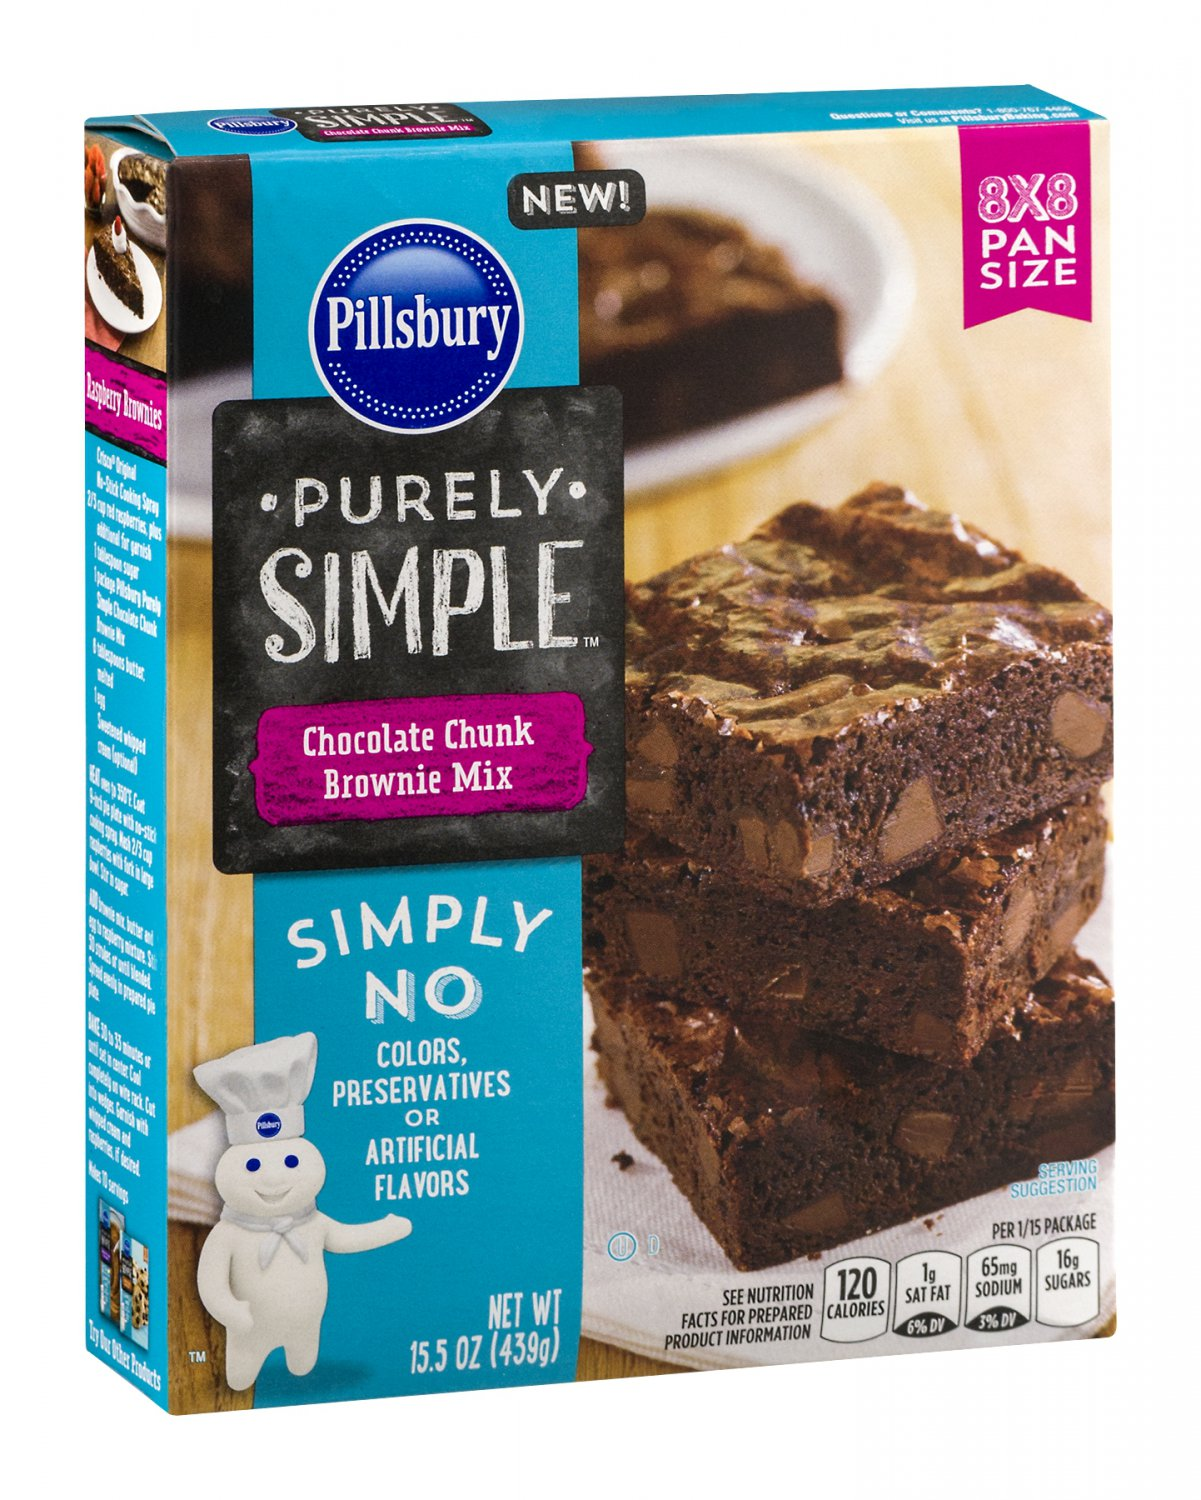 Pillsbury, Purely Simple Mixes, 15.5oz Box (Chocolate Chunk Brownie Mix)